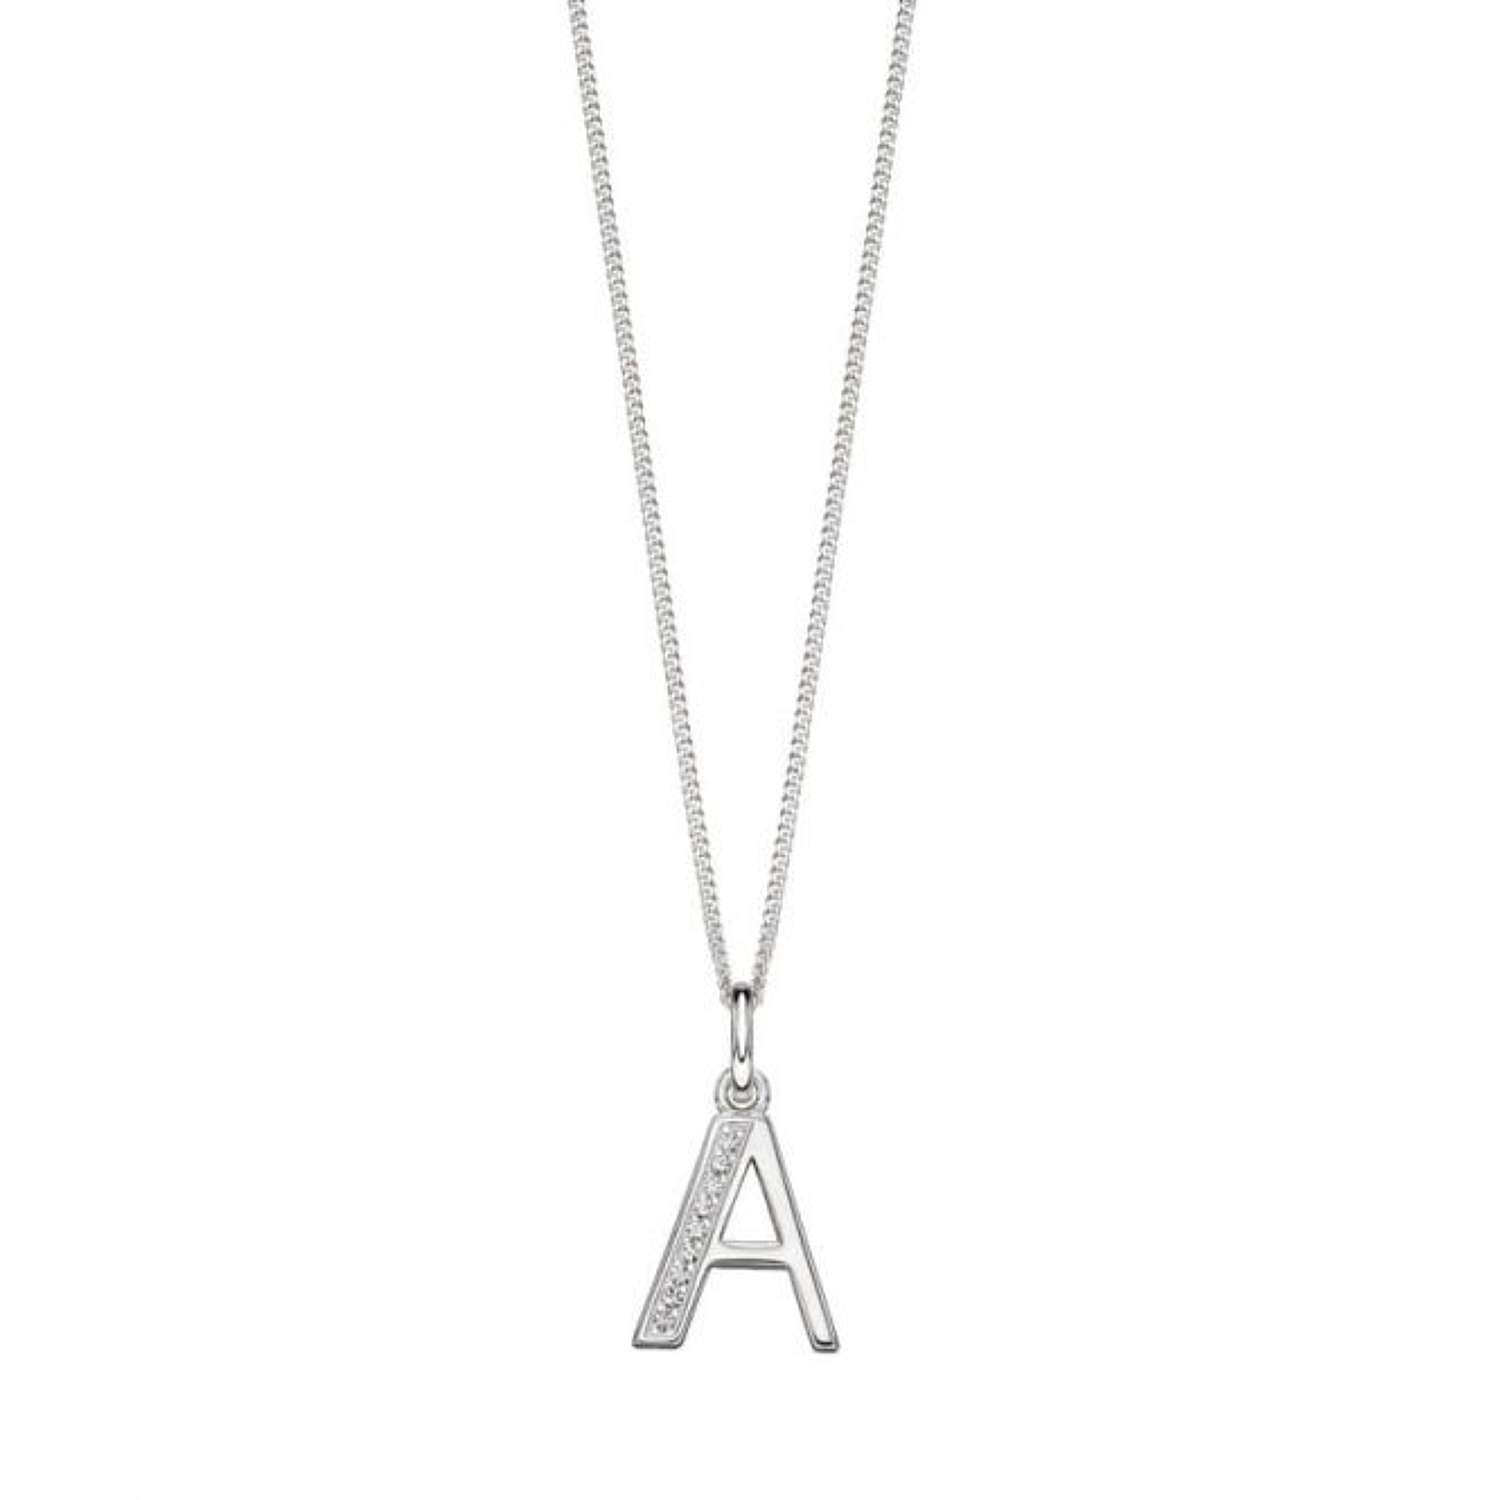 Elements Sterling Silver Birthstone Necklace